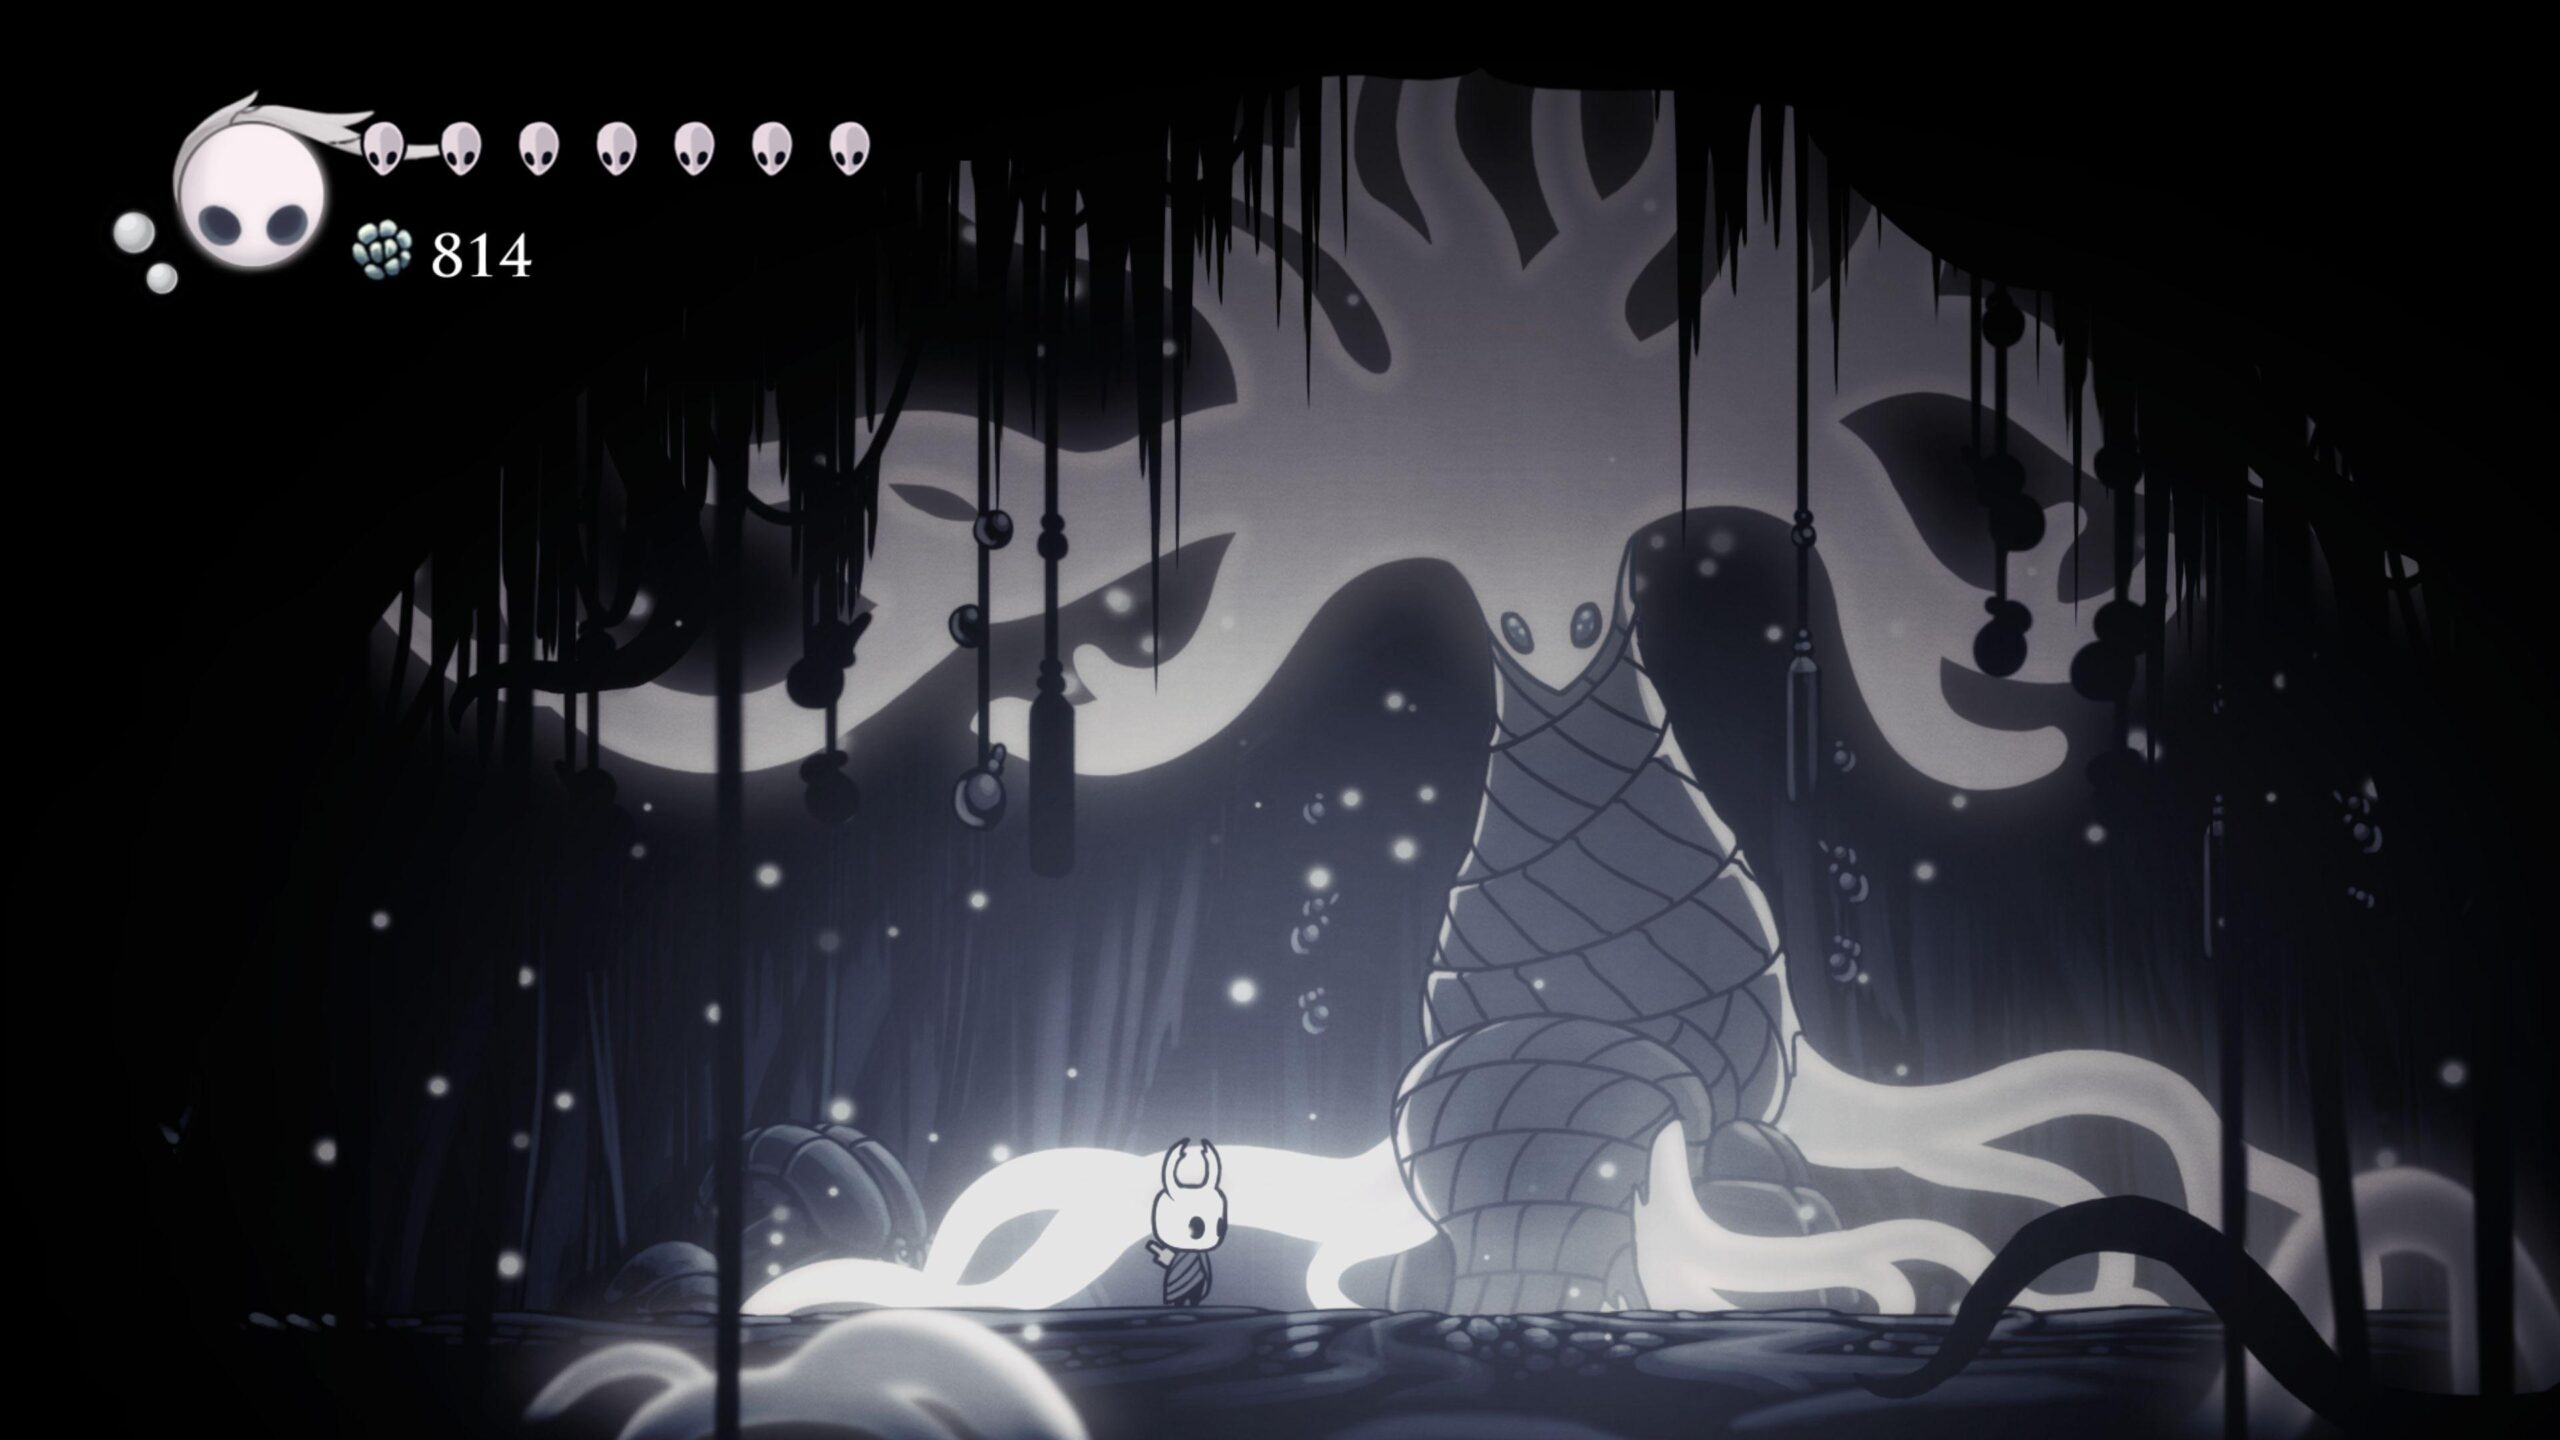 hollow knight wallpaper mobile